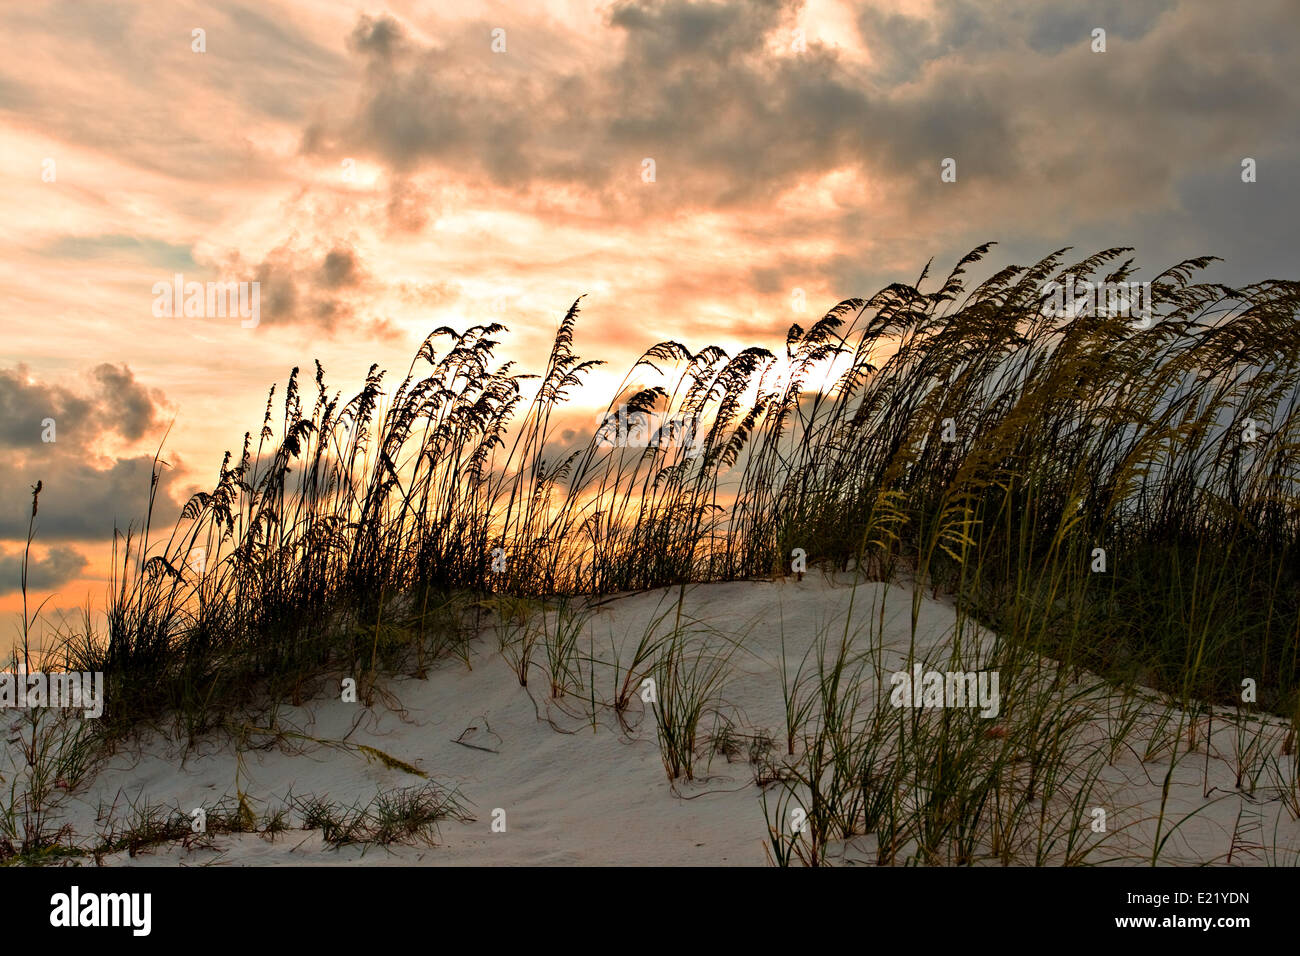 Sand dune and grasses - Stock Image